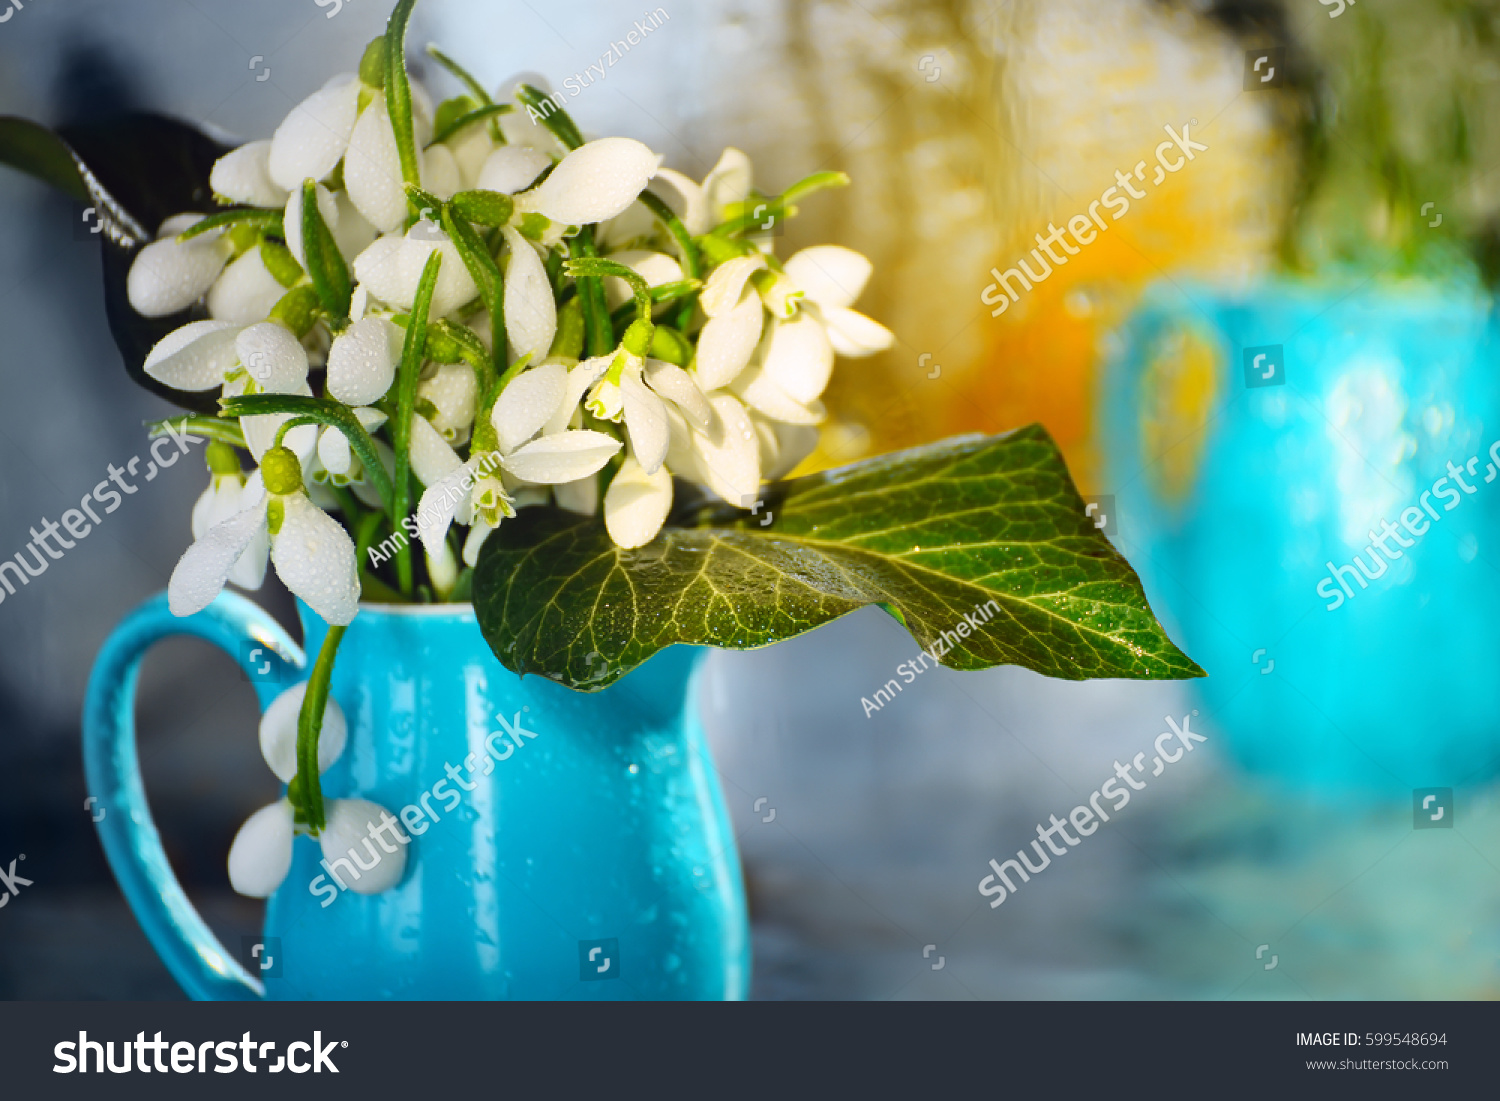 Tender Beautiful White Flowers Snowdrops Blue Stock Photo